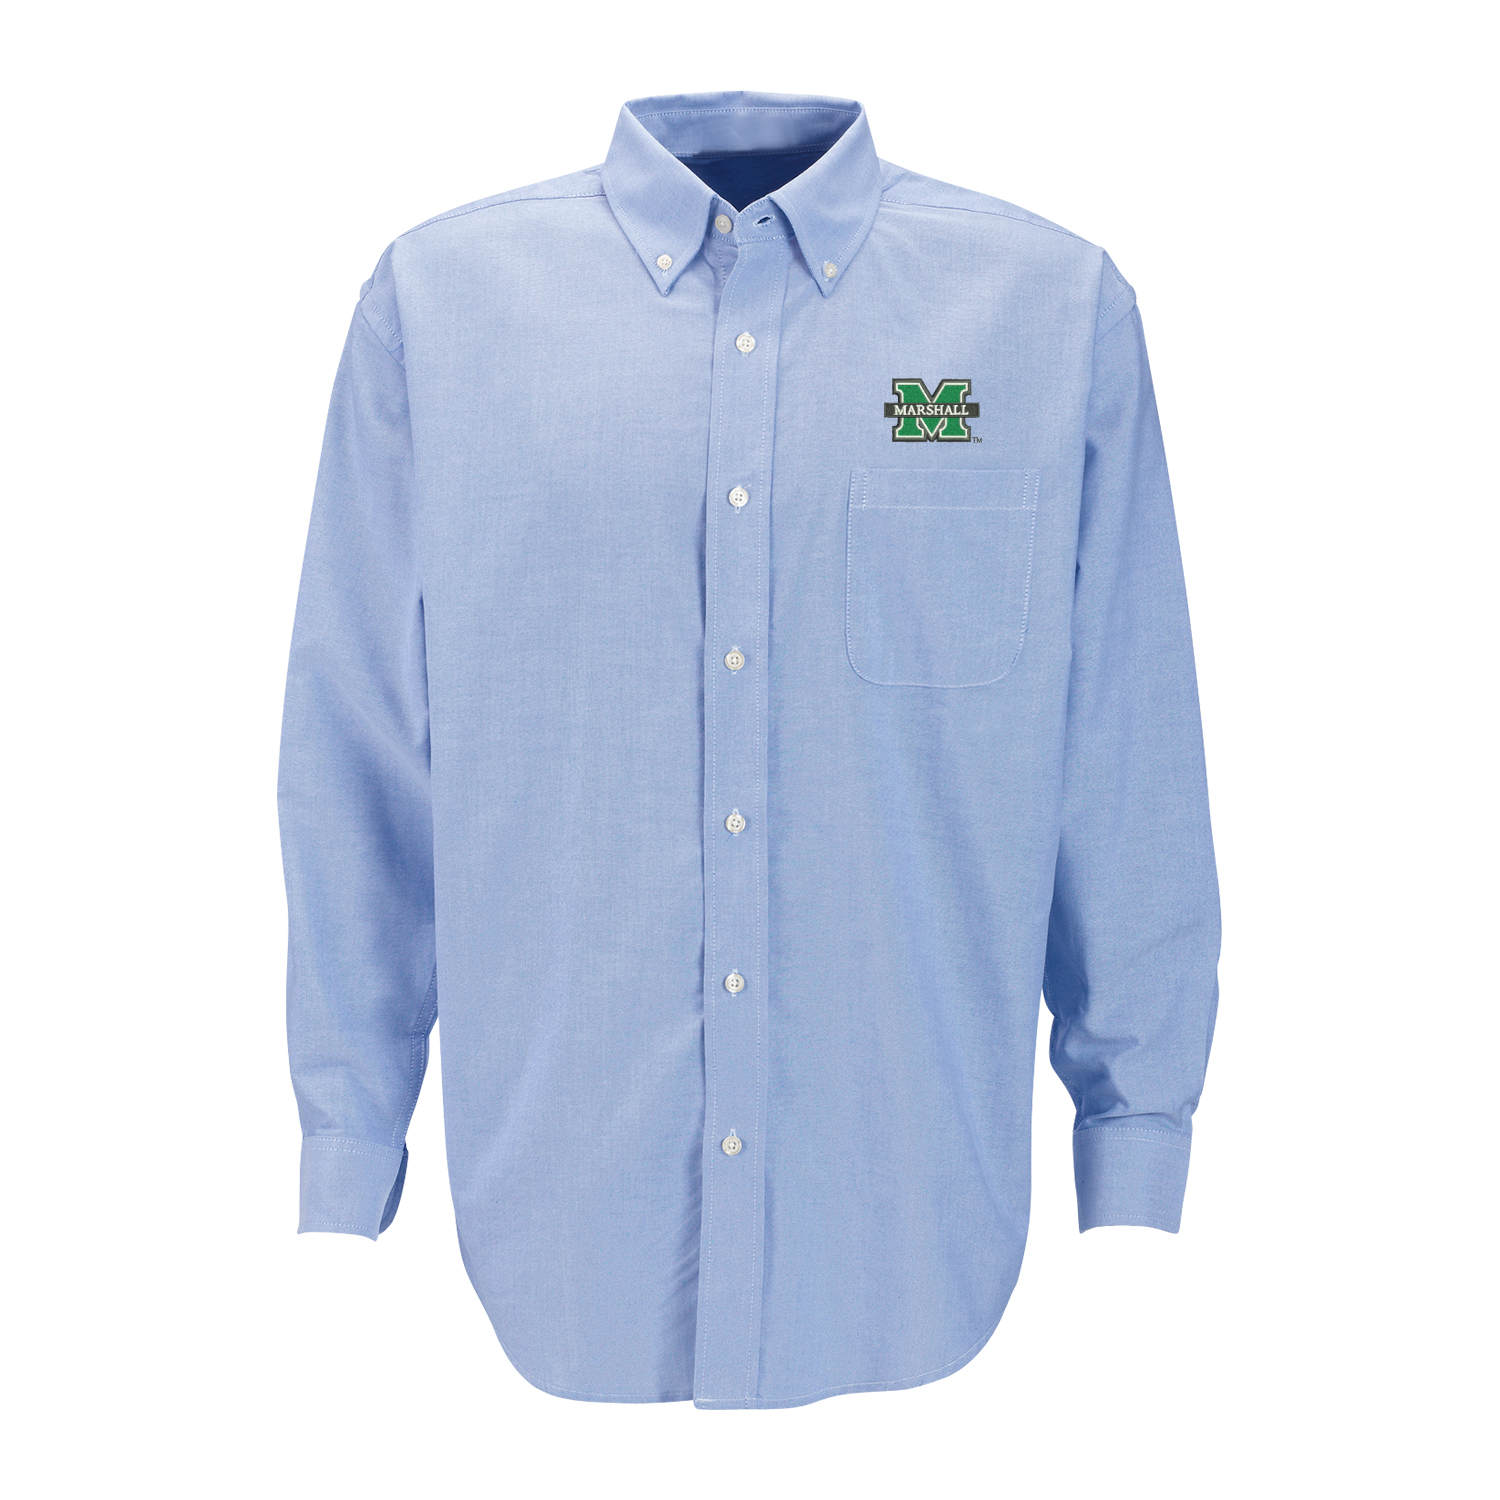 9435BU <br>MU Oxford Dress Shirt <br>$47.99